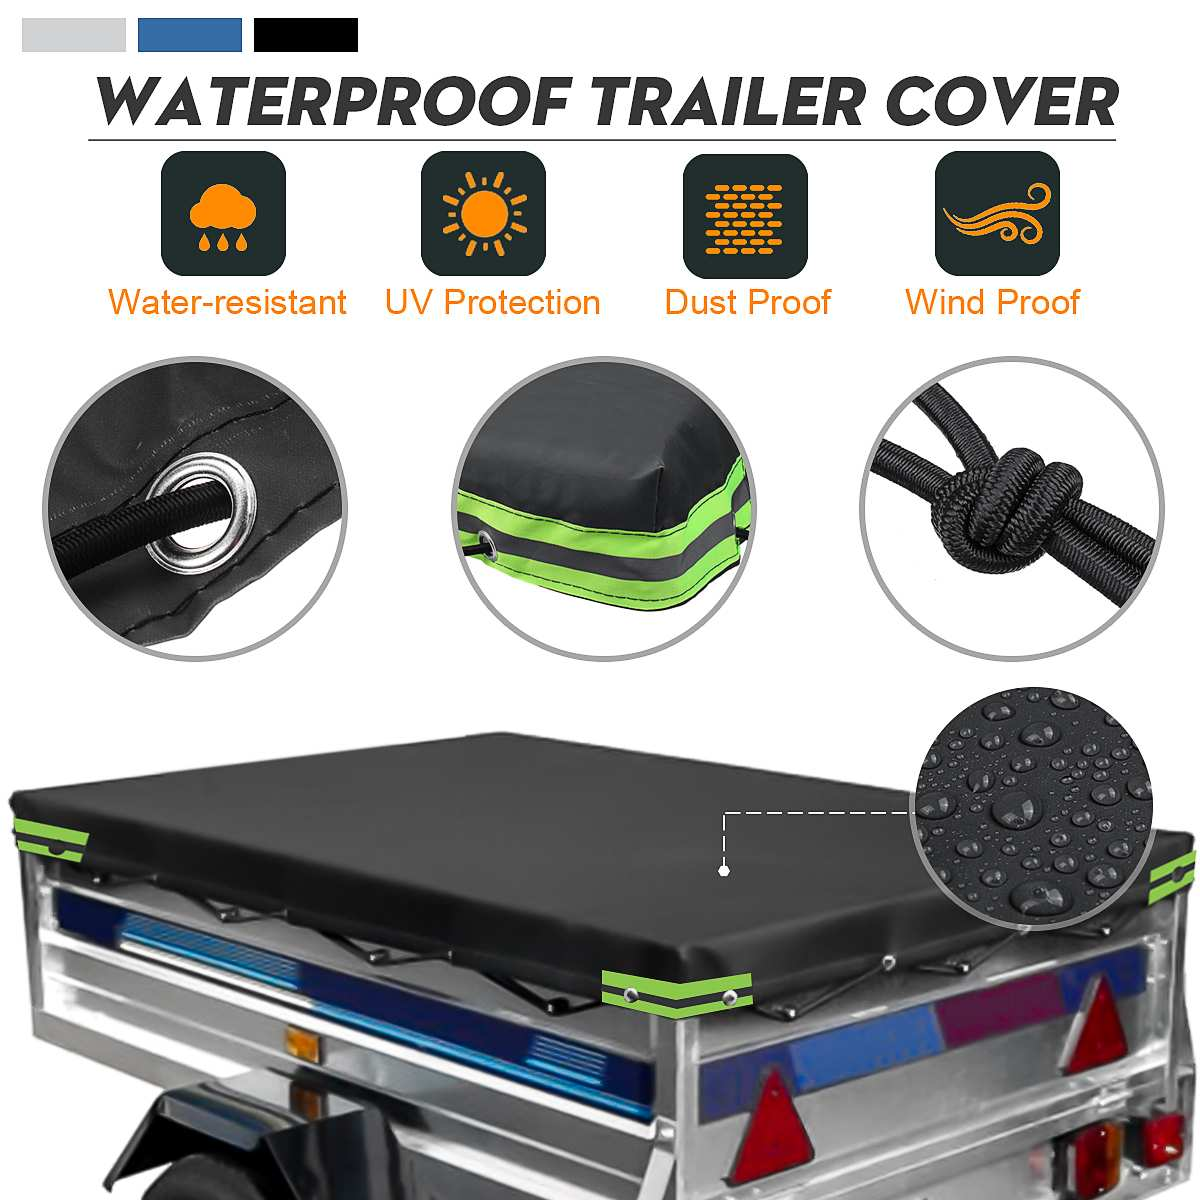 Car Trailer Cover Canopy Auto Roof Tent Cover Outdoor Protection Waterproof Windproof Dust-proof 6' X 4' Ft 183 X 122cm